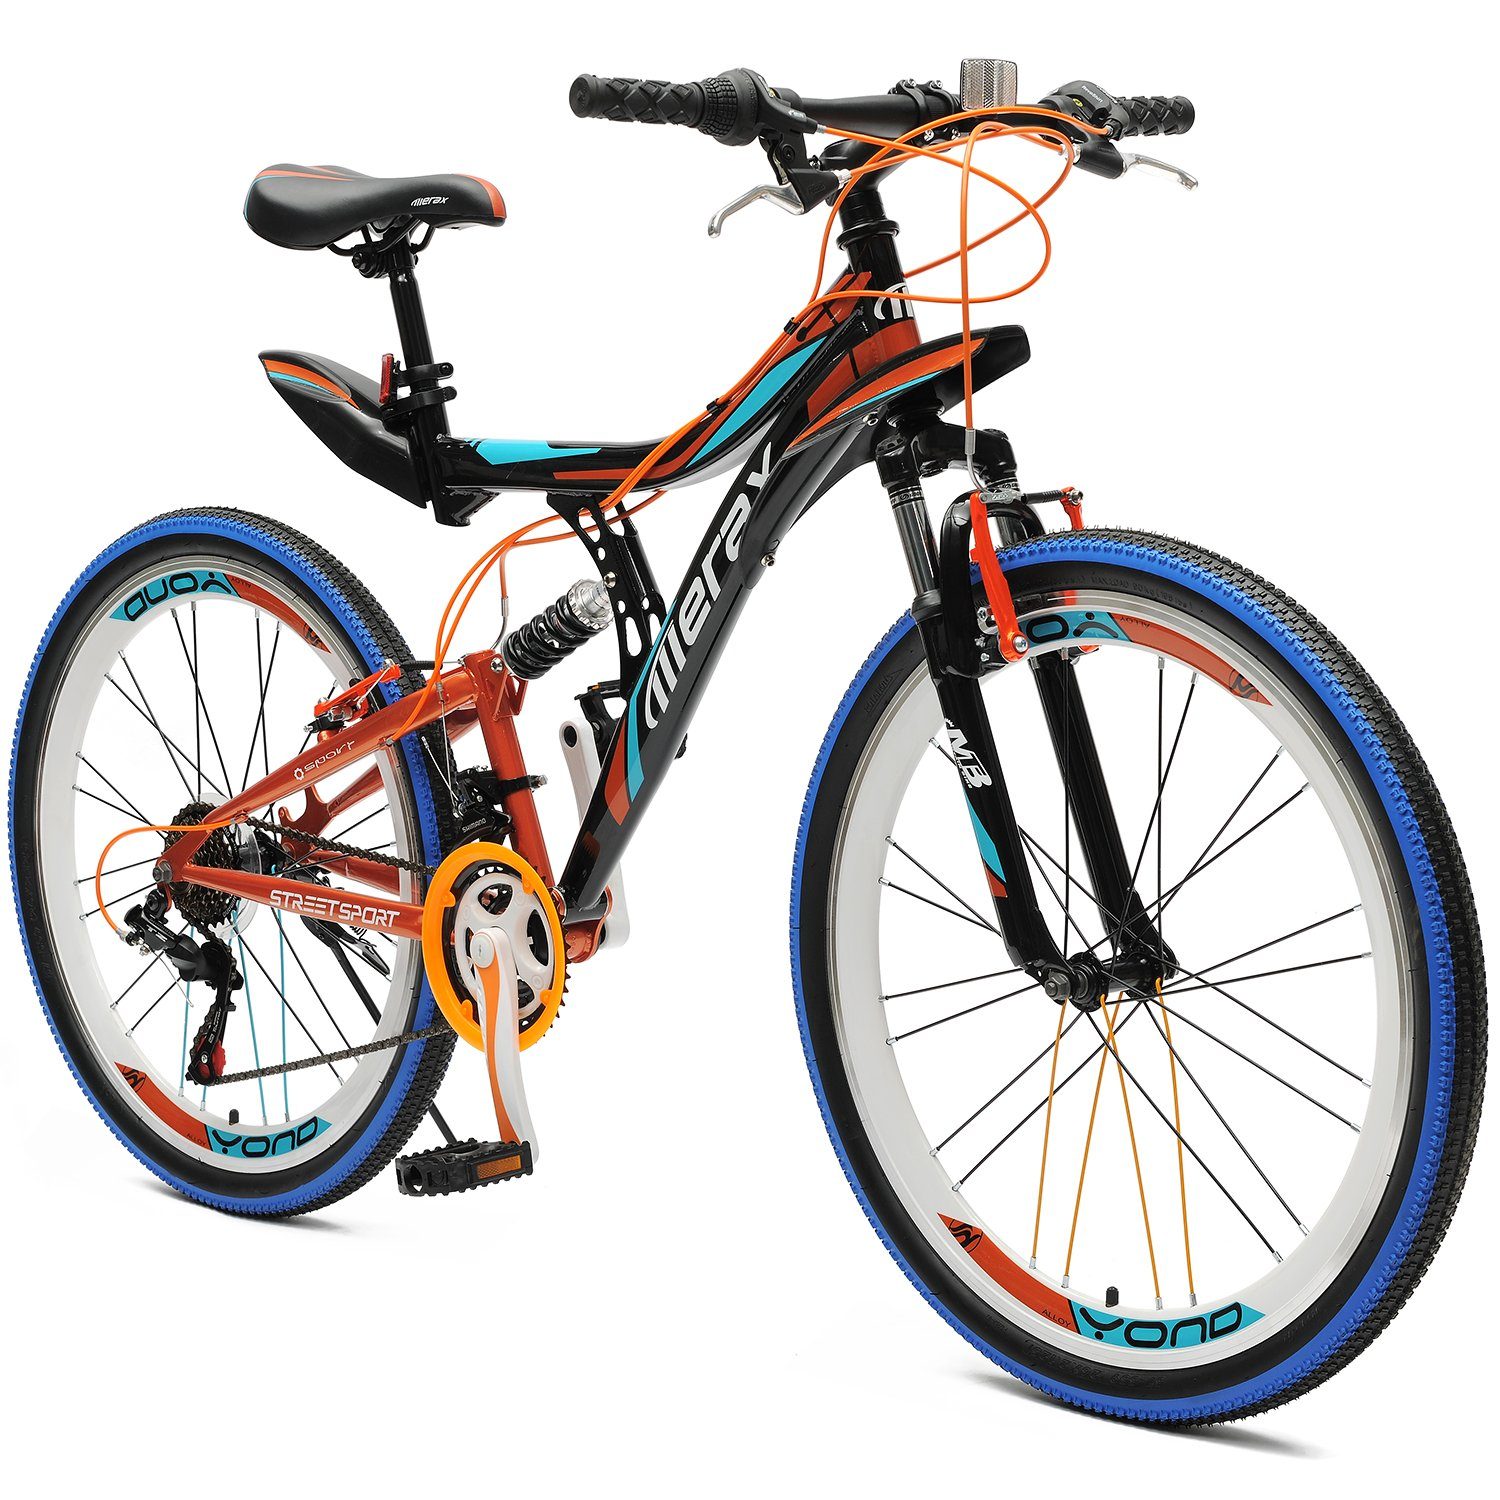 10 Best Mountain Bikes - List and Reviews 2018-2019 on Flipboard